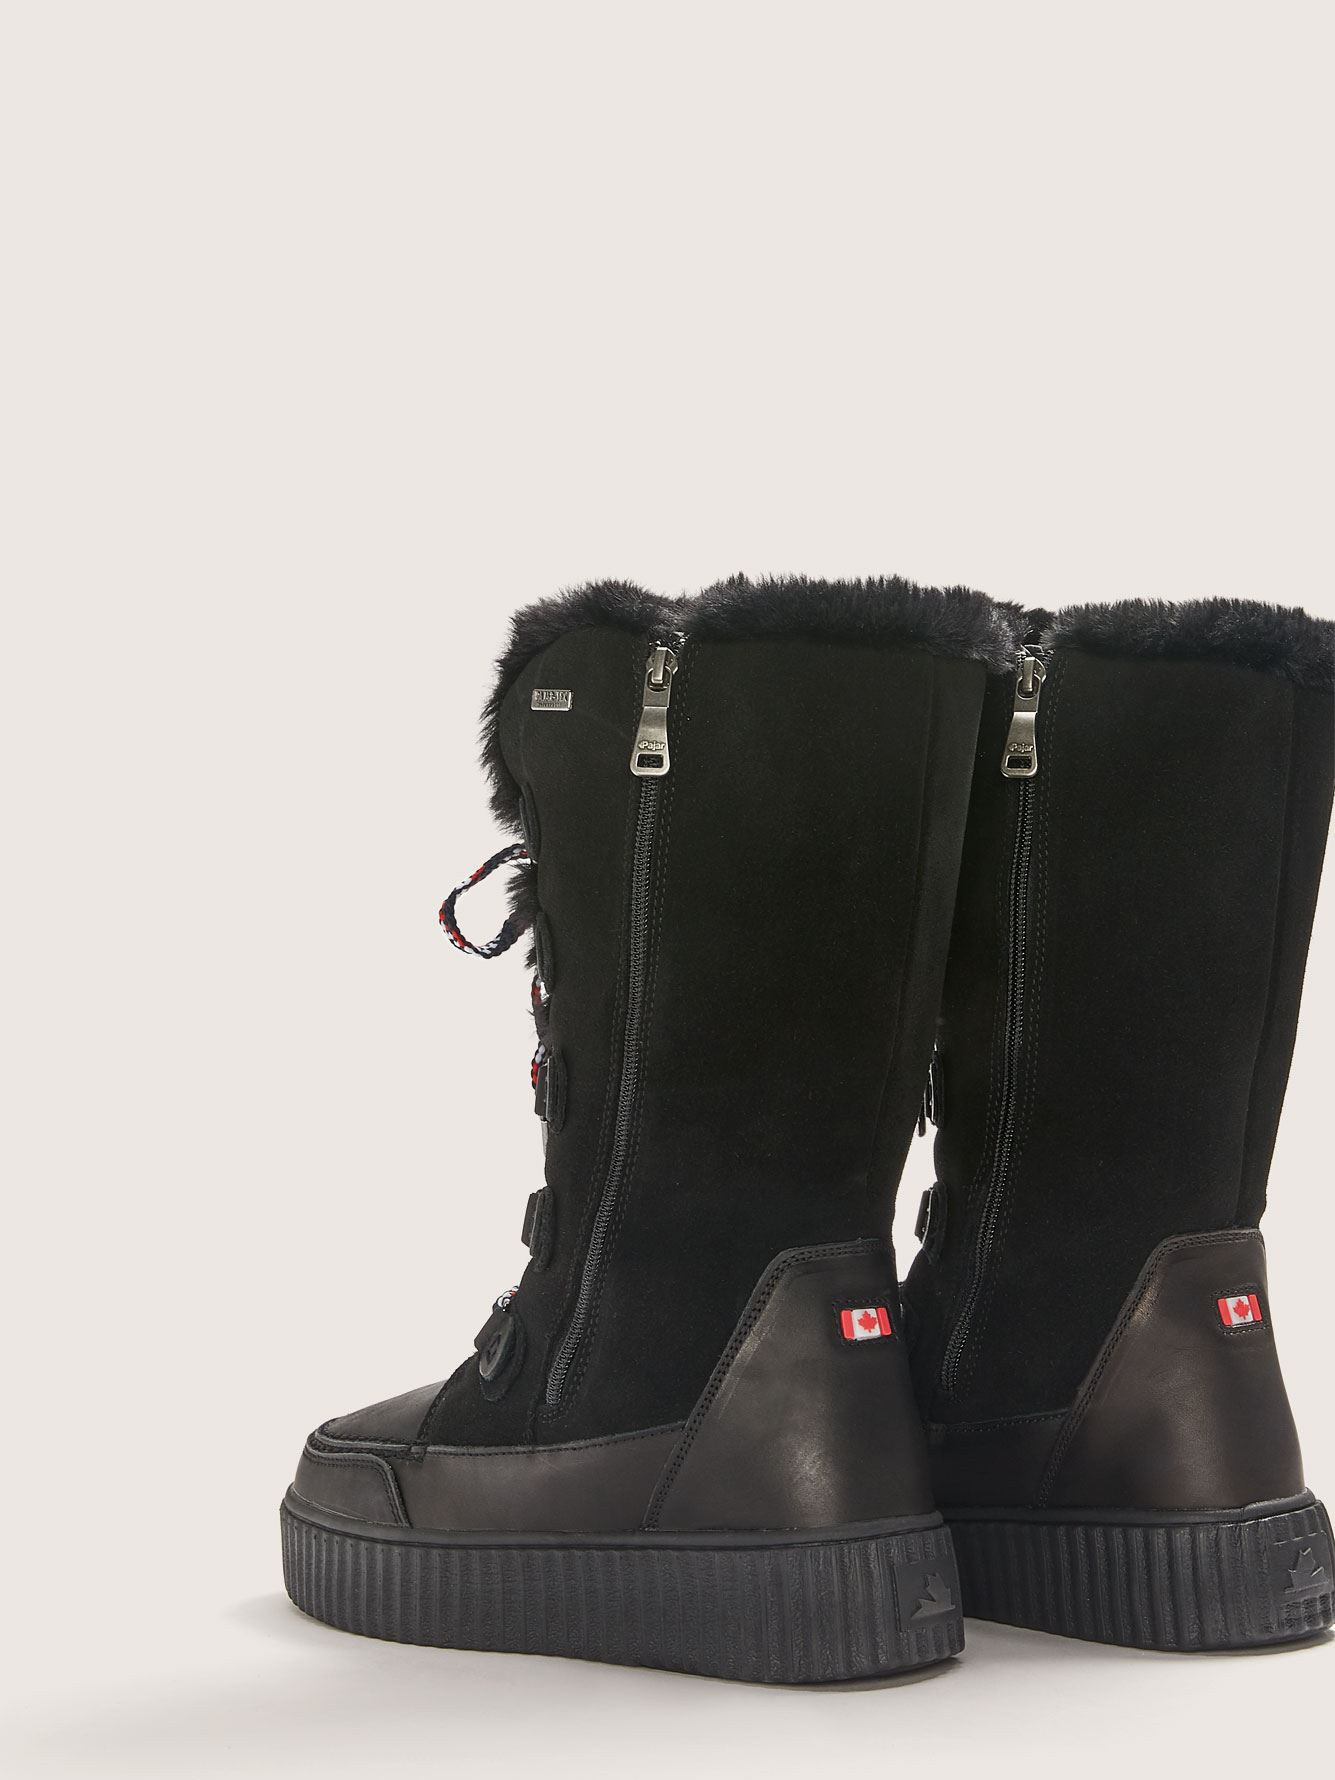 Wide Caitlyn Lace-Up Winter Boot - Pajar